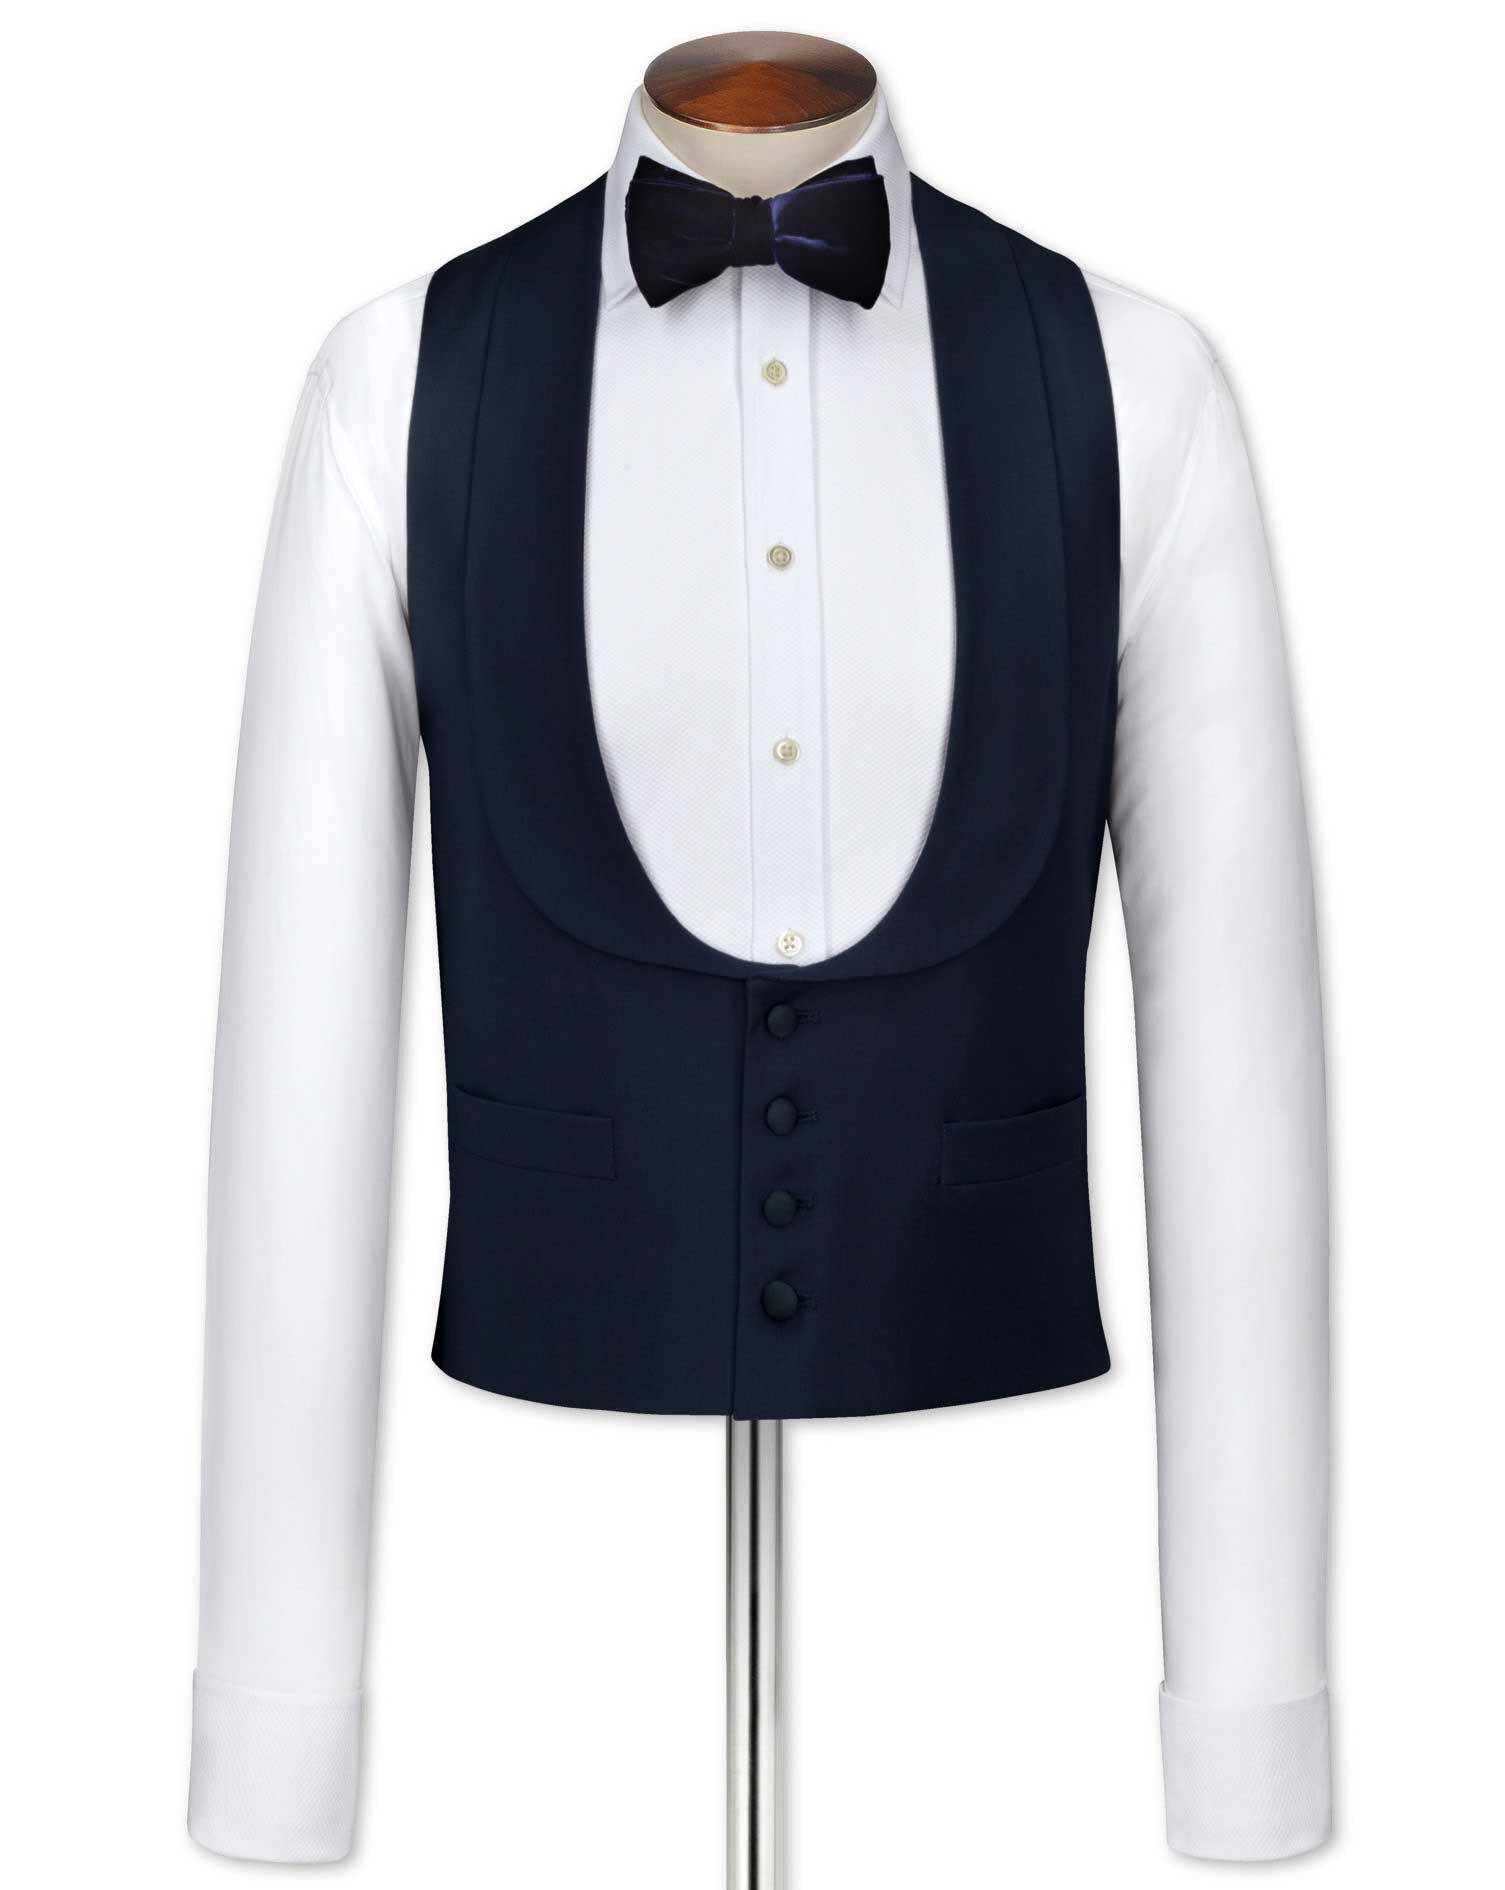 1920s Style Mens Vests Charles Tyrwhitt Navy tuxedo waistcoat £70.00 AT vintagedancer.com